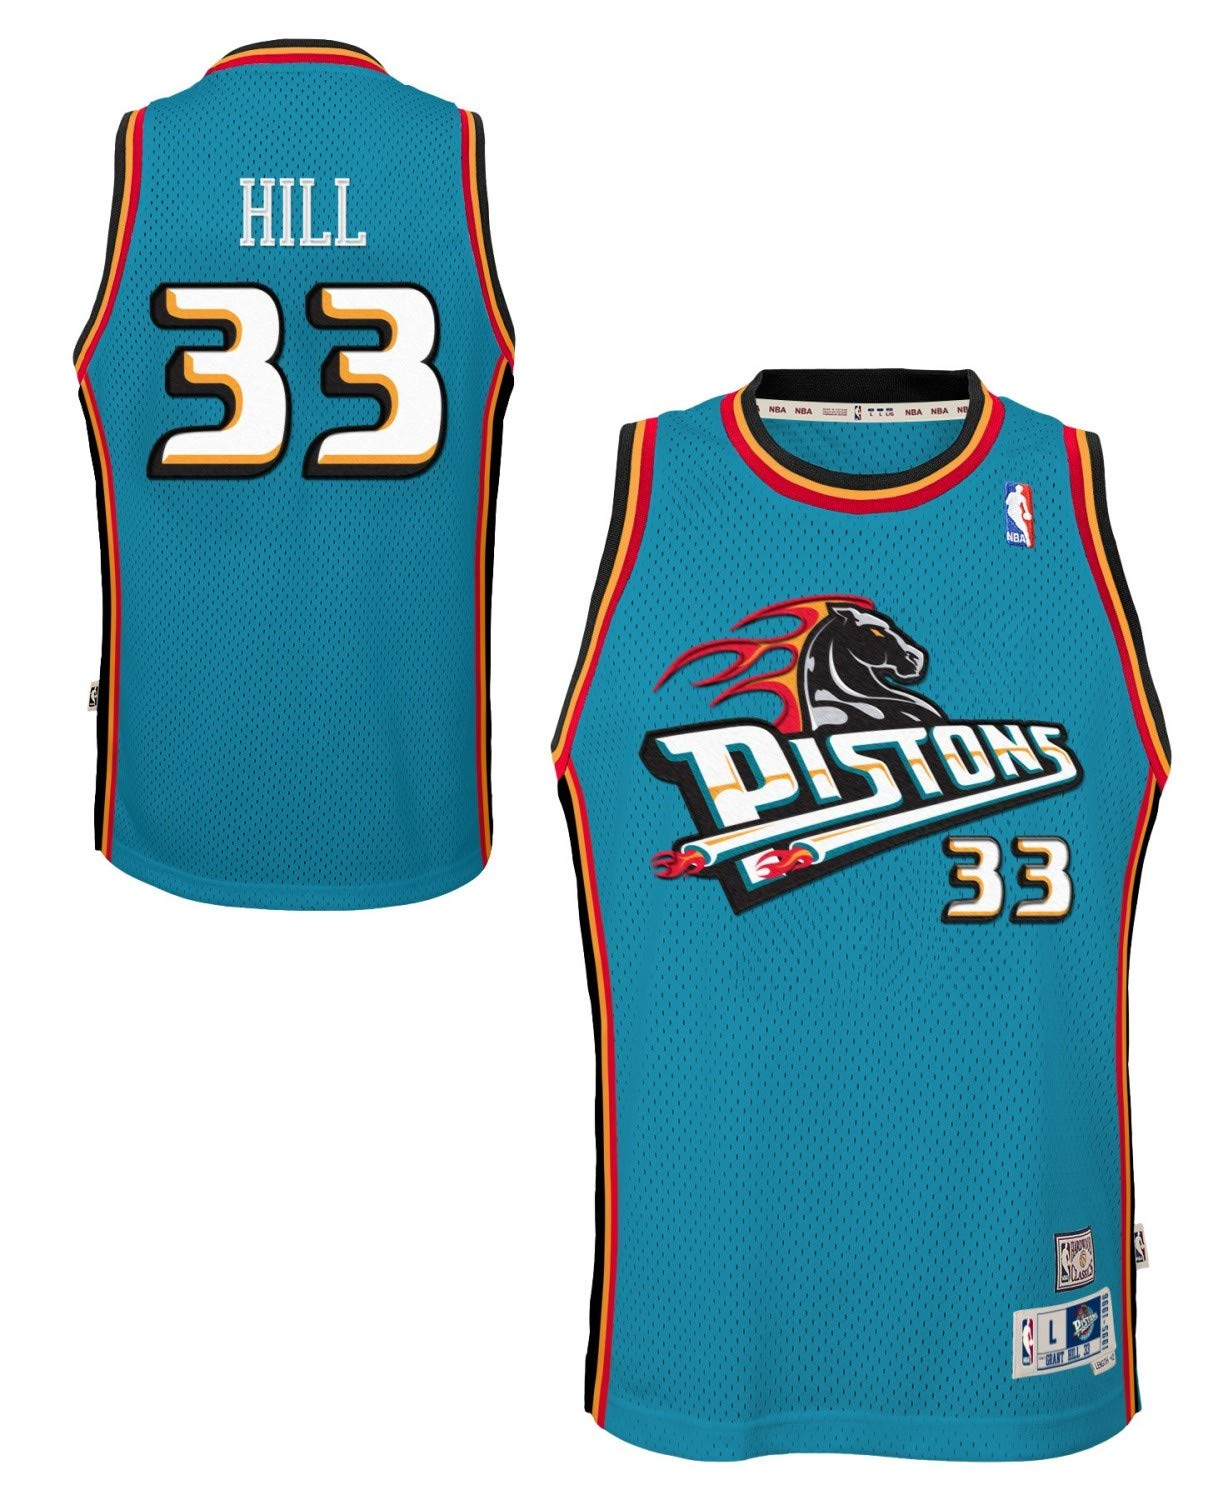 info for 012b2 1e5f6 Amazon.com : Grant Hill Detroit Pistons Youth Swingman ...